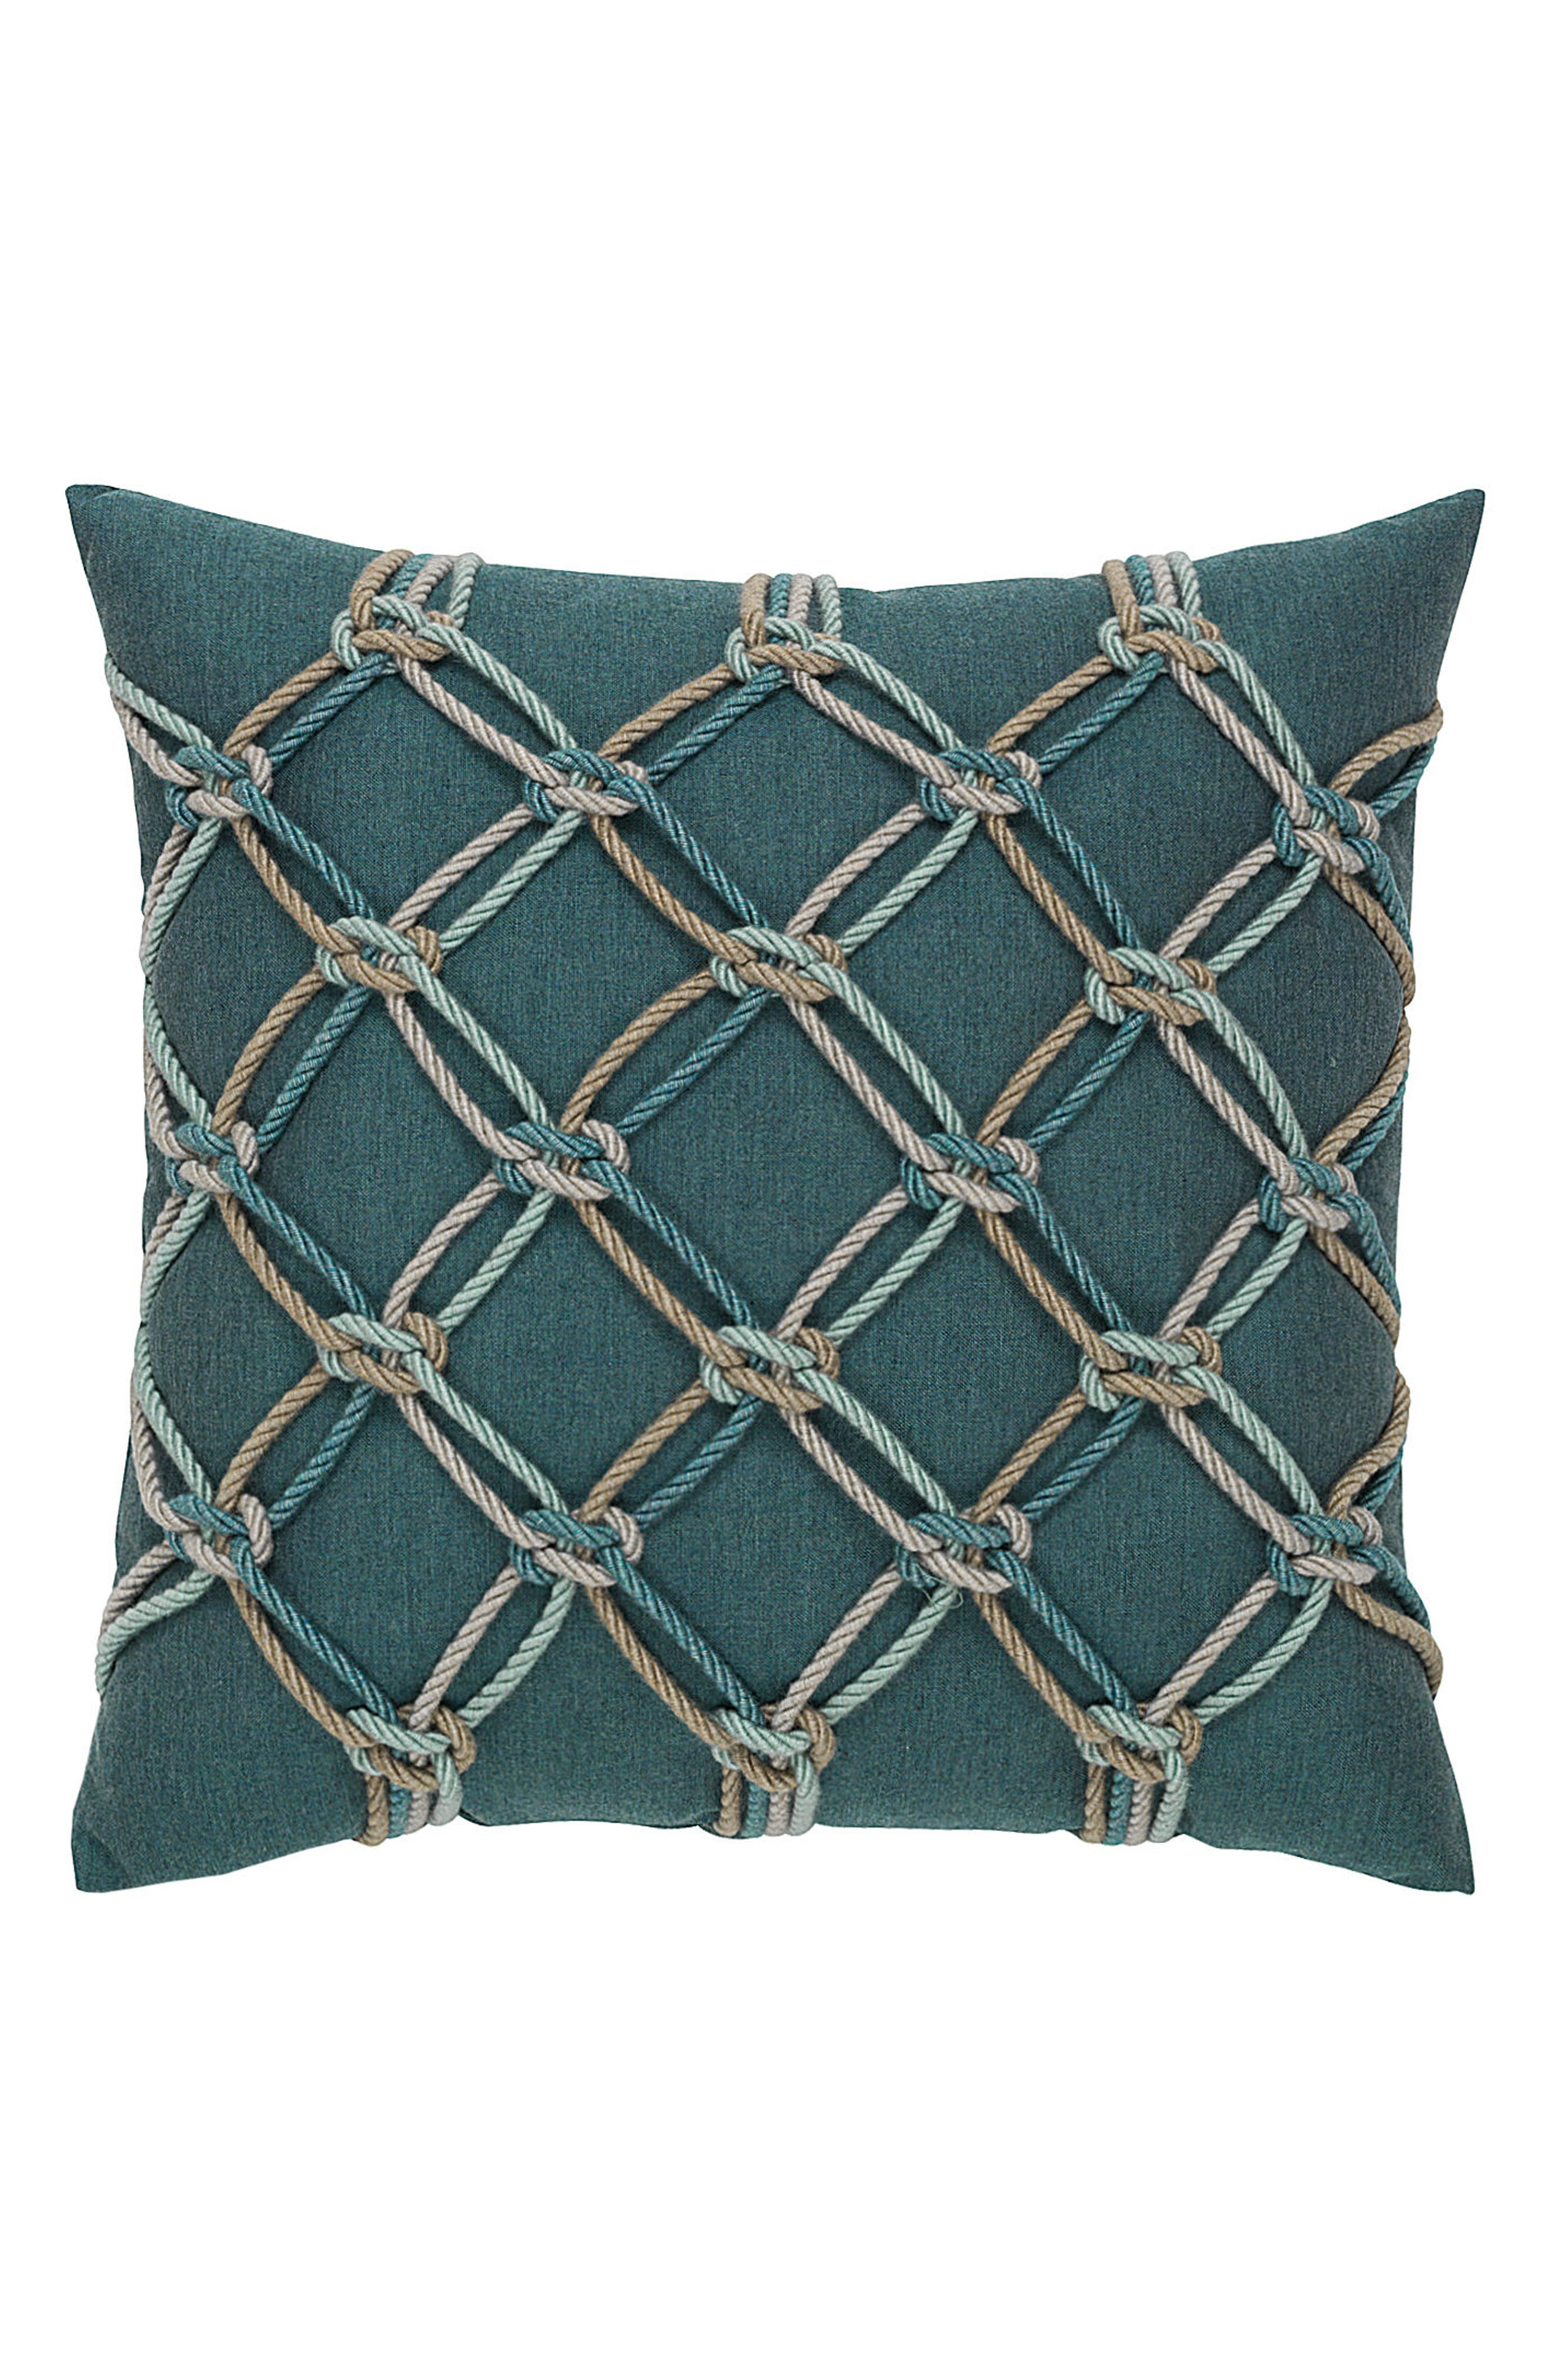 Lagoon Rope Indoor/Outdoor Accent Pillow,                             Main thumbnail 1, color,                             400